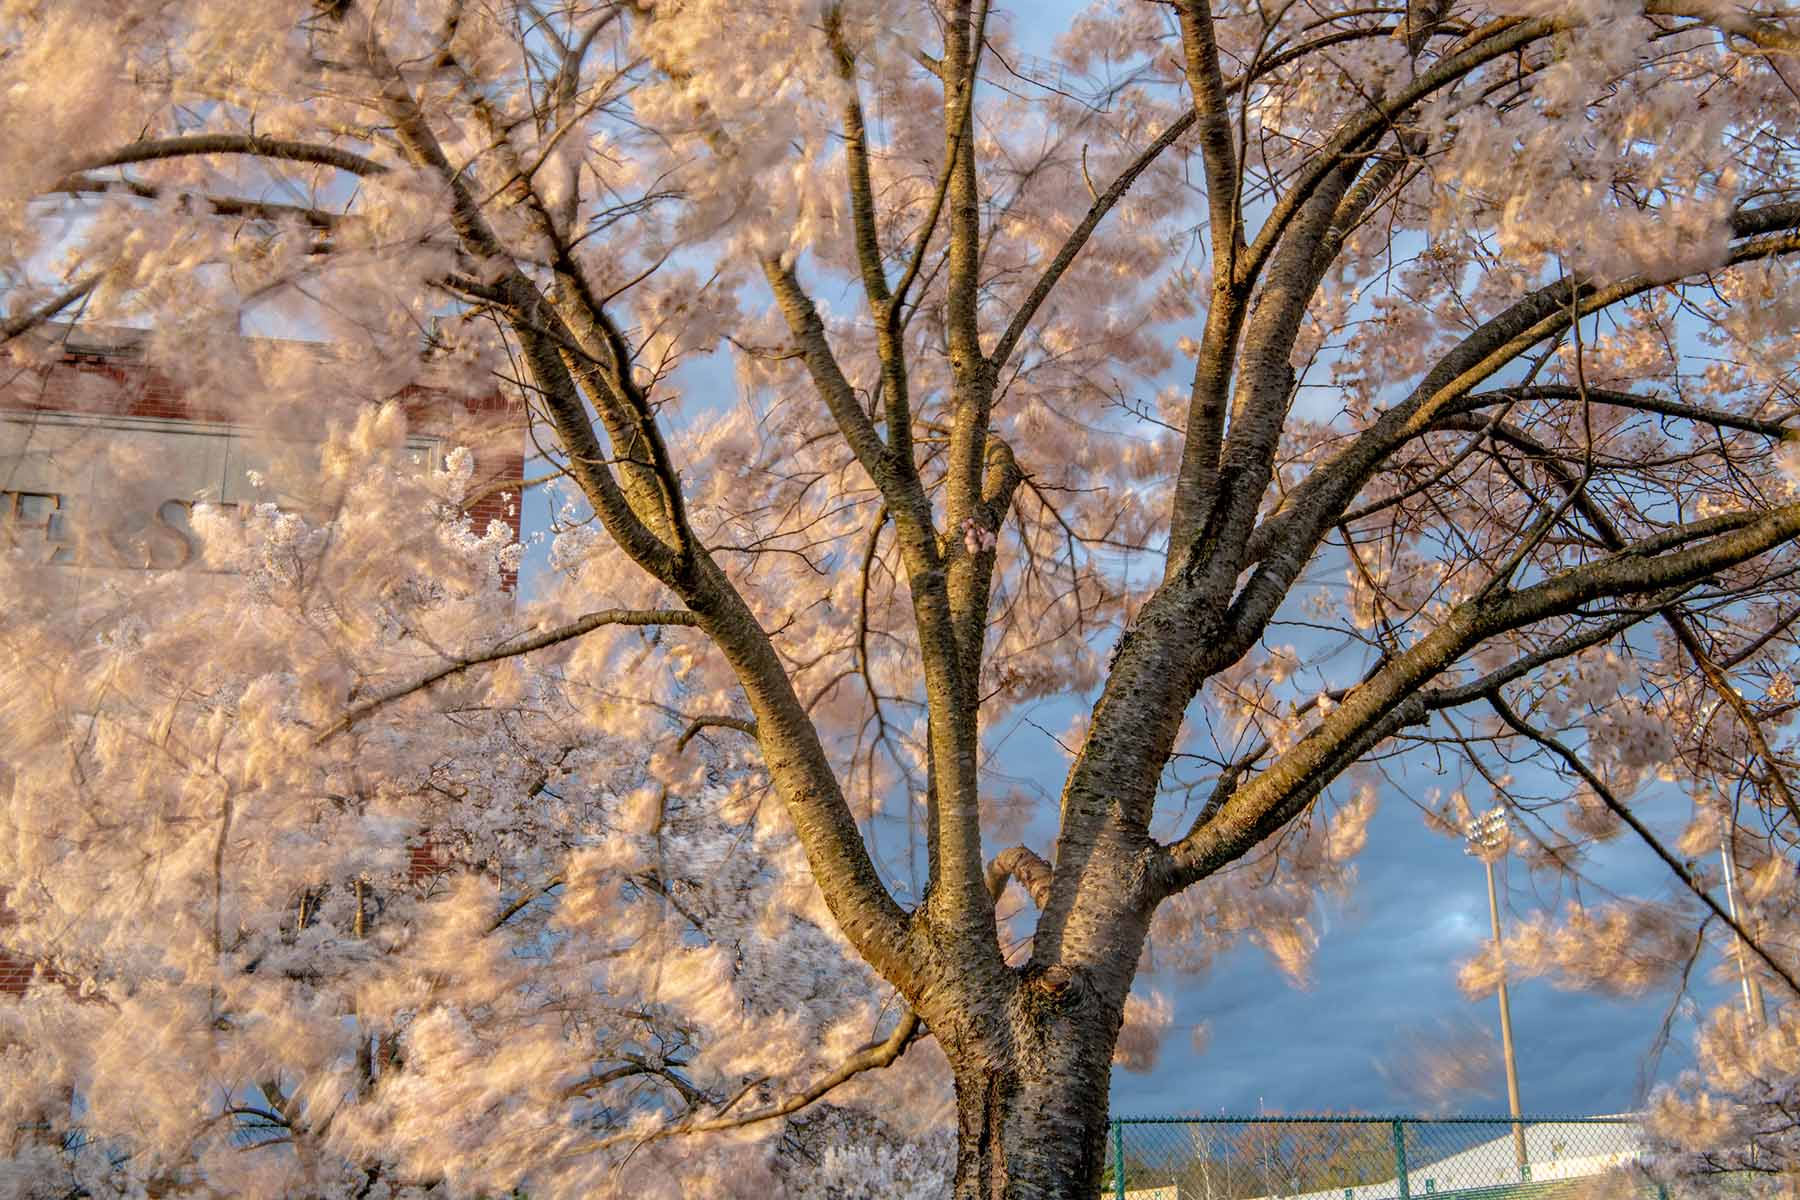 A blossoming cherry tree moving in the breeze